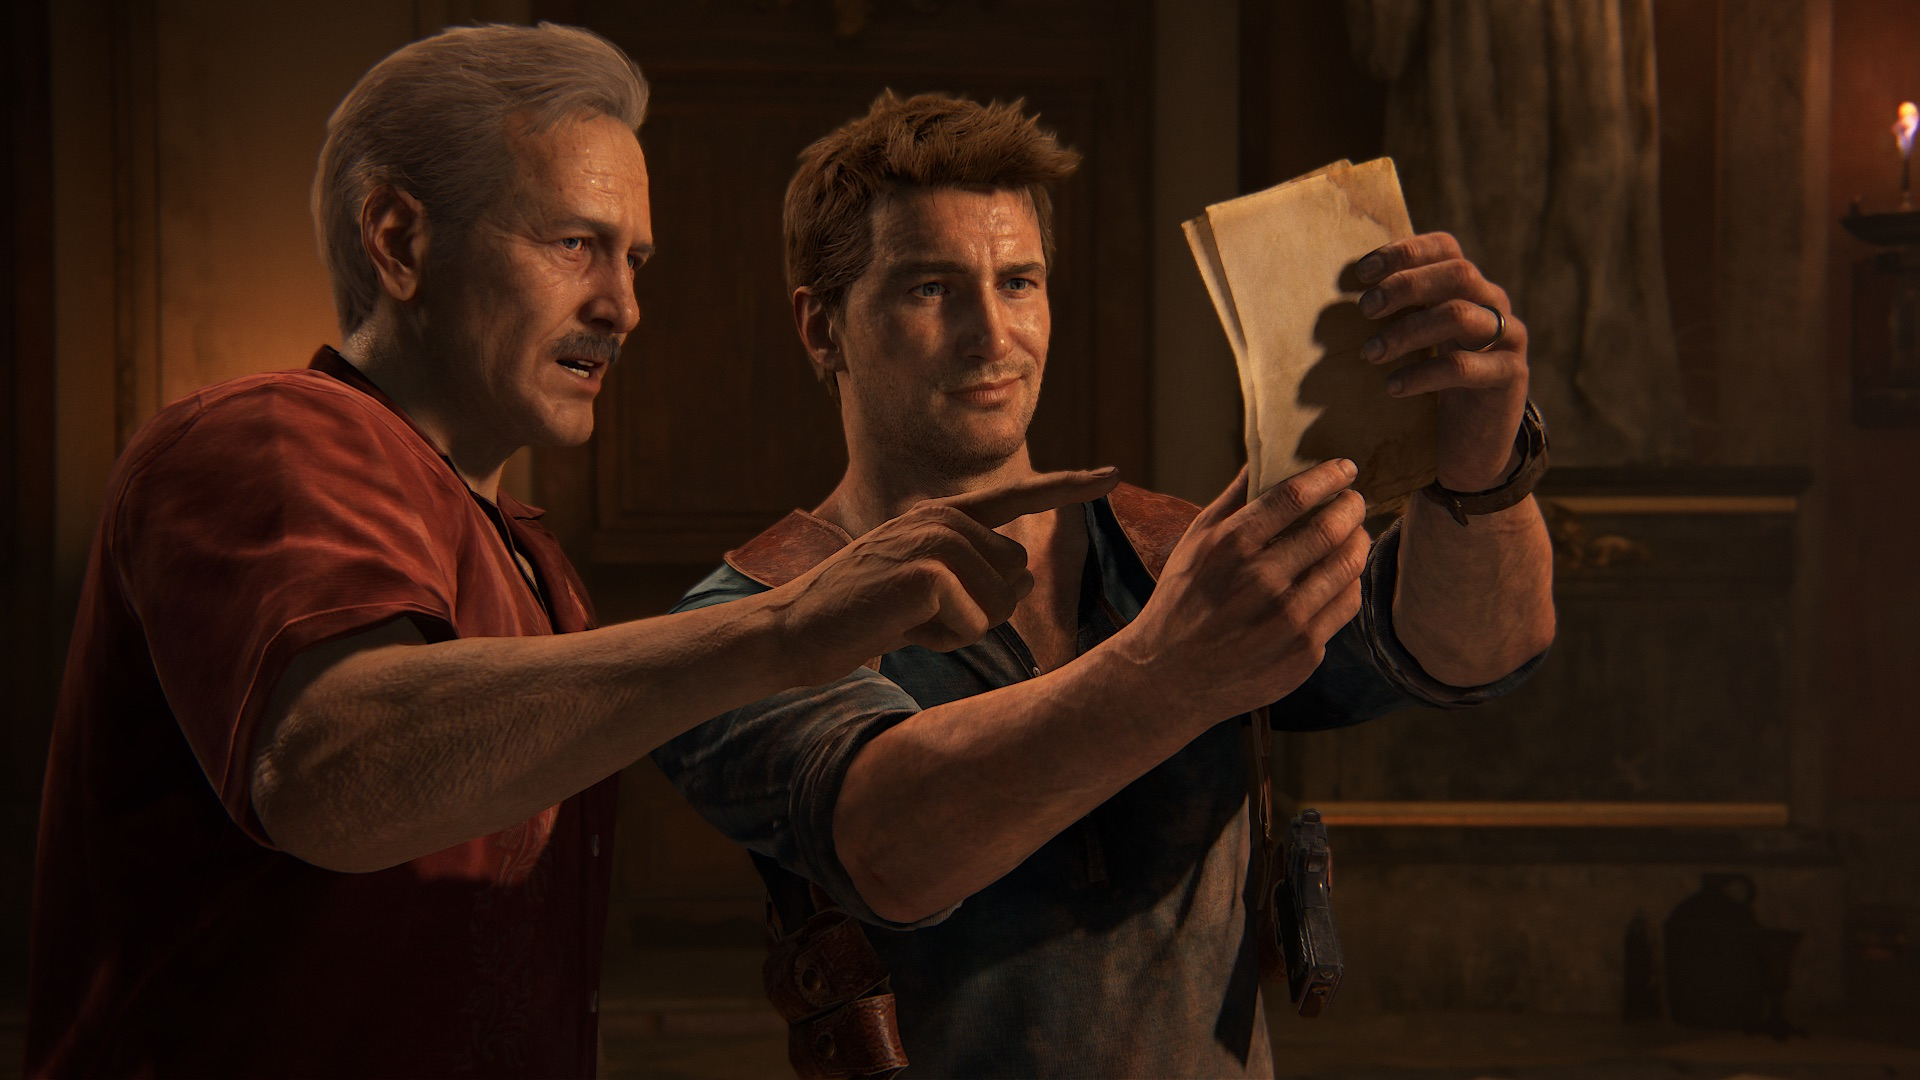 <em>Uncharted 4: A Thief's End</em>concludes Nathan Drake's arc with big action set pieces and visuals that still look sharp five years after release. And Paul Newman, I guess.